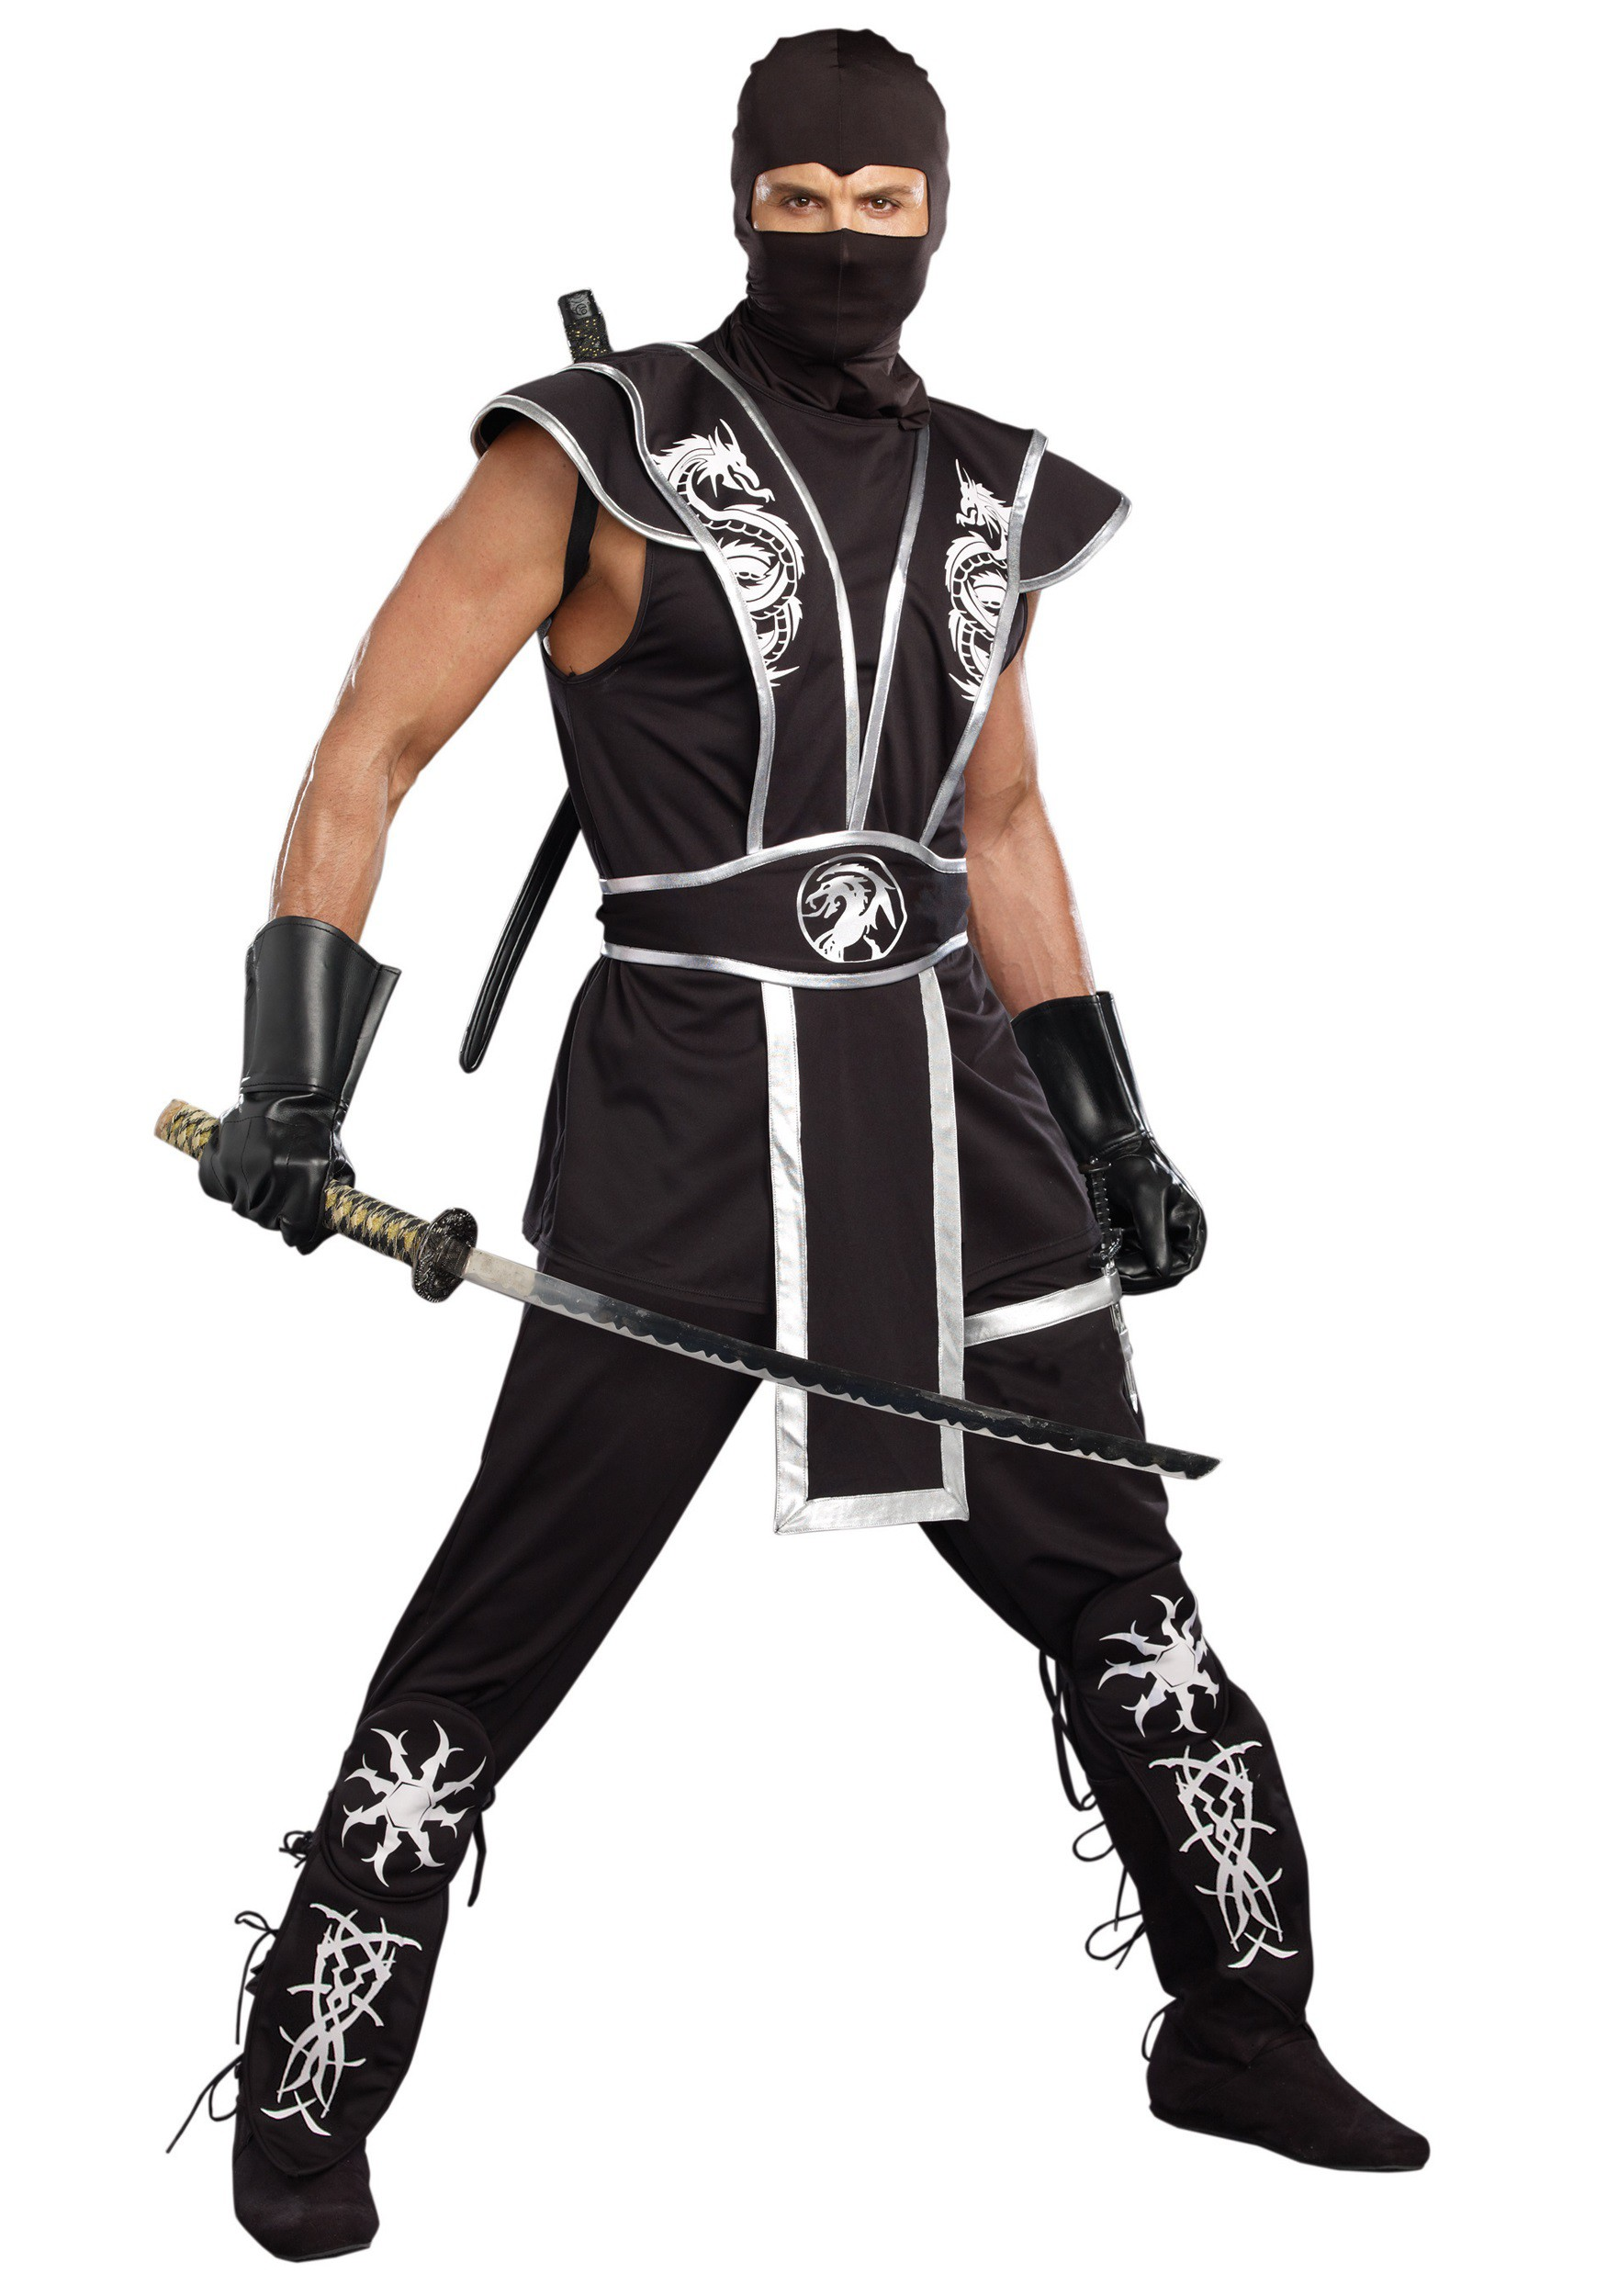 Blades Of Death Men's Ninja Costume